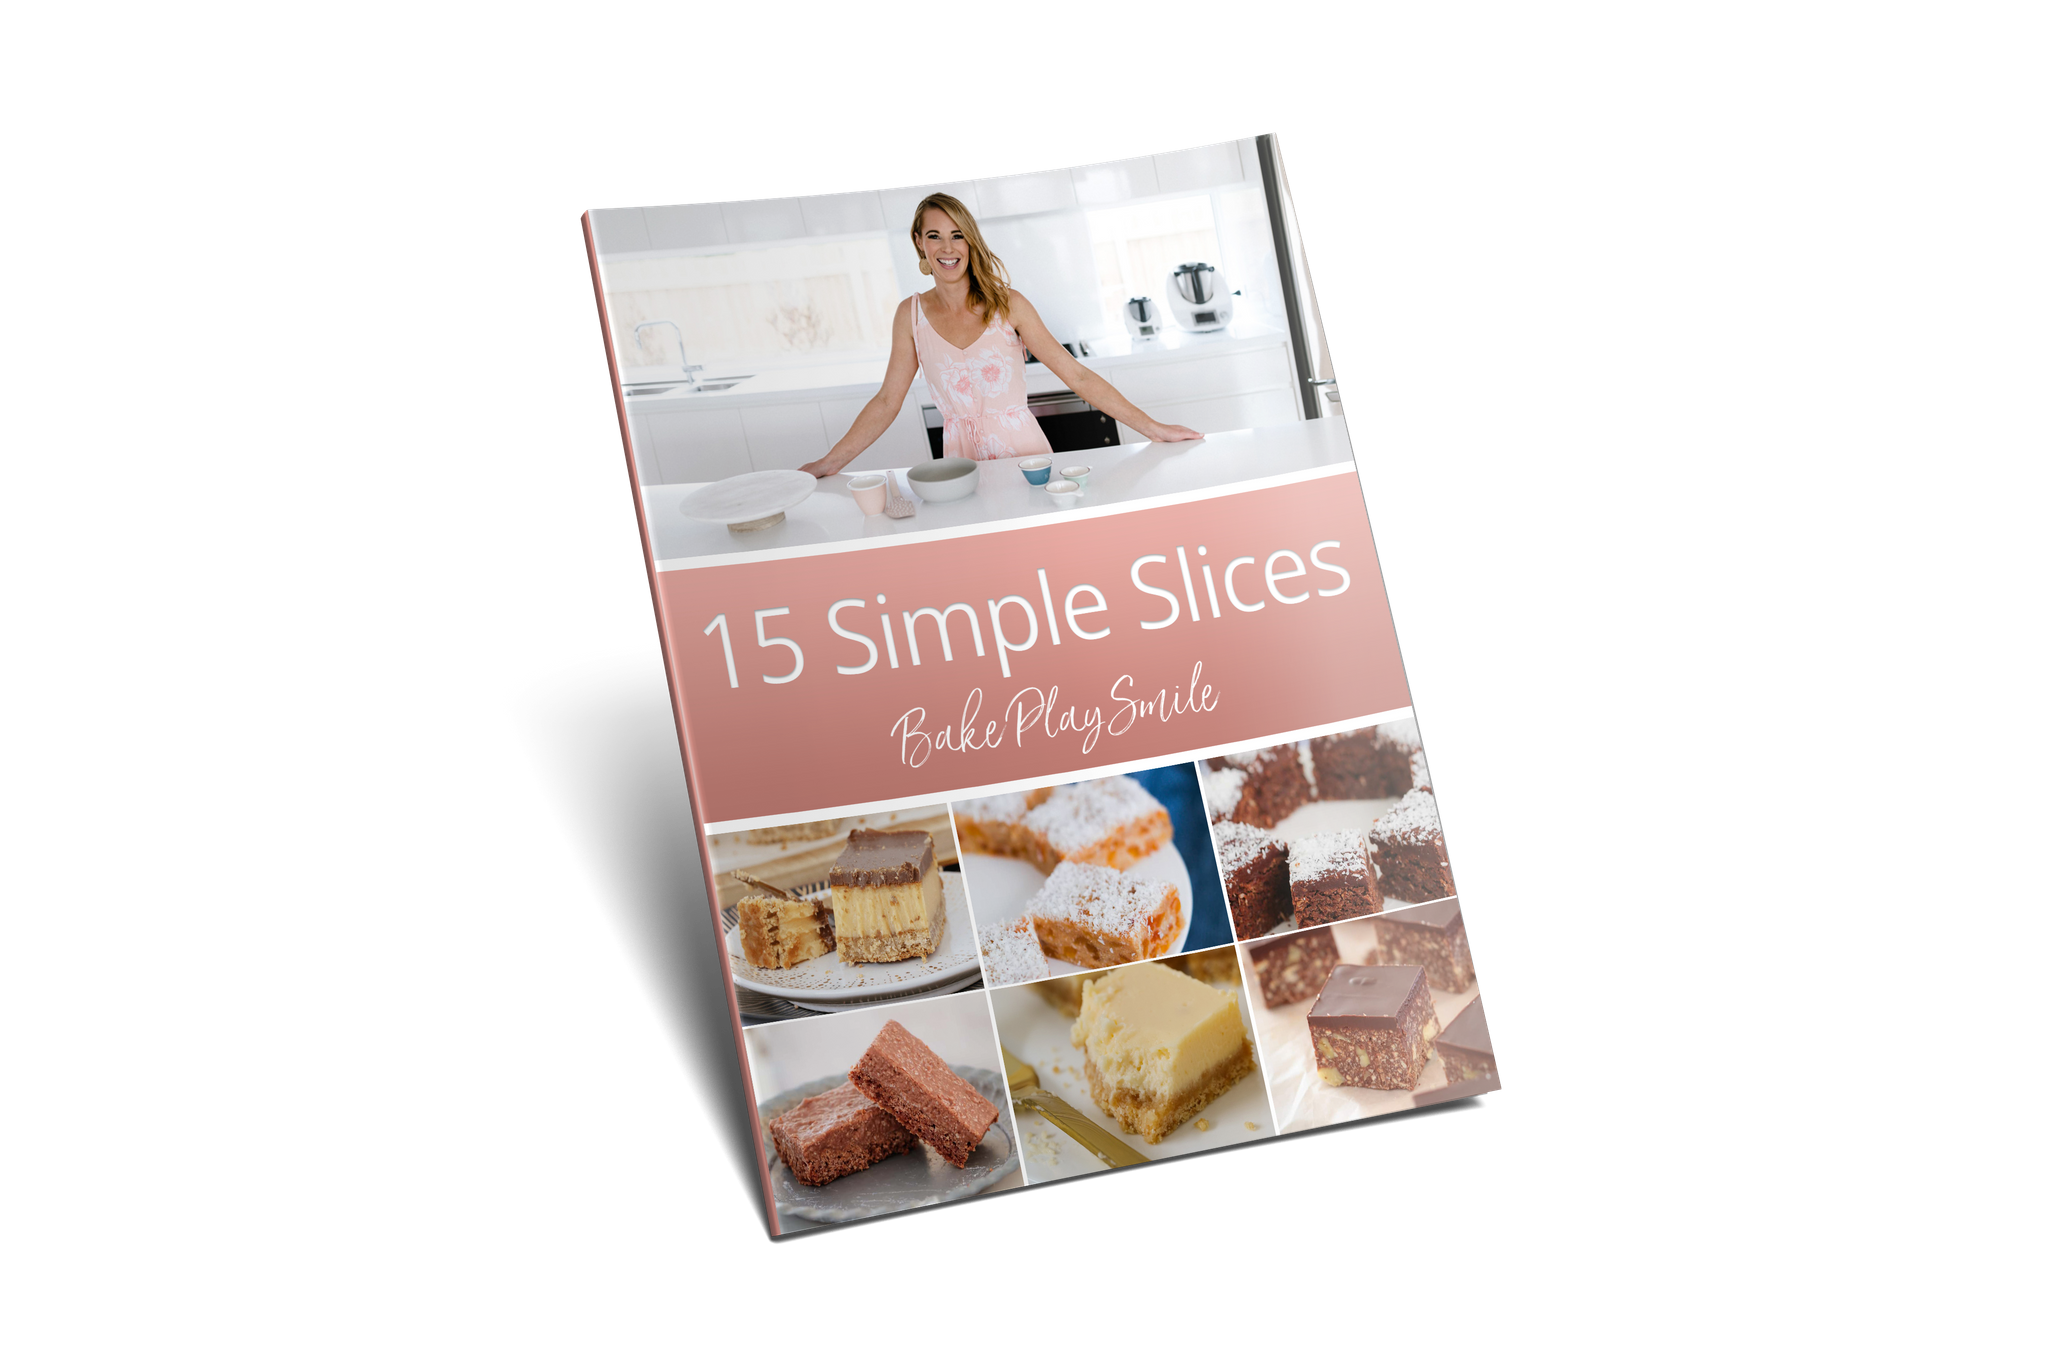 an image of a cookbook of slice recipes